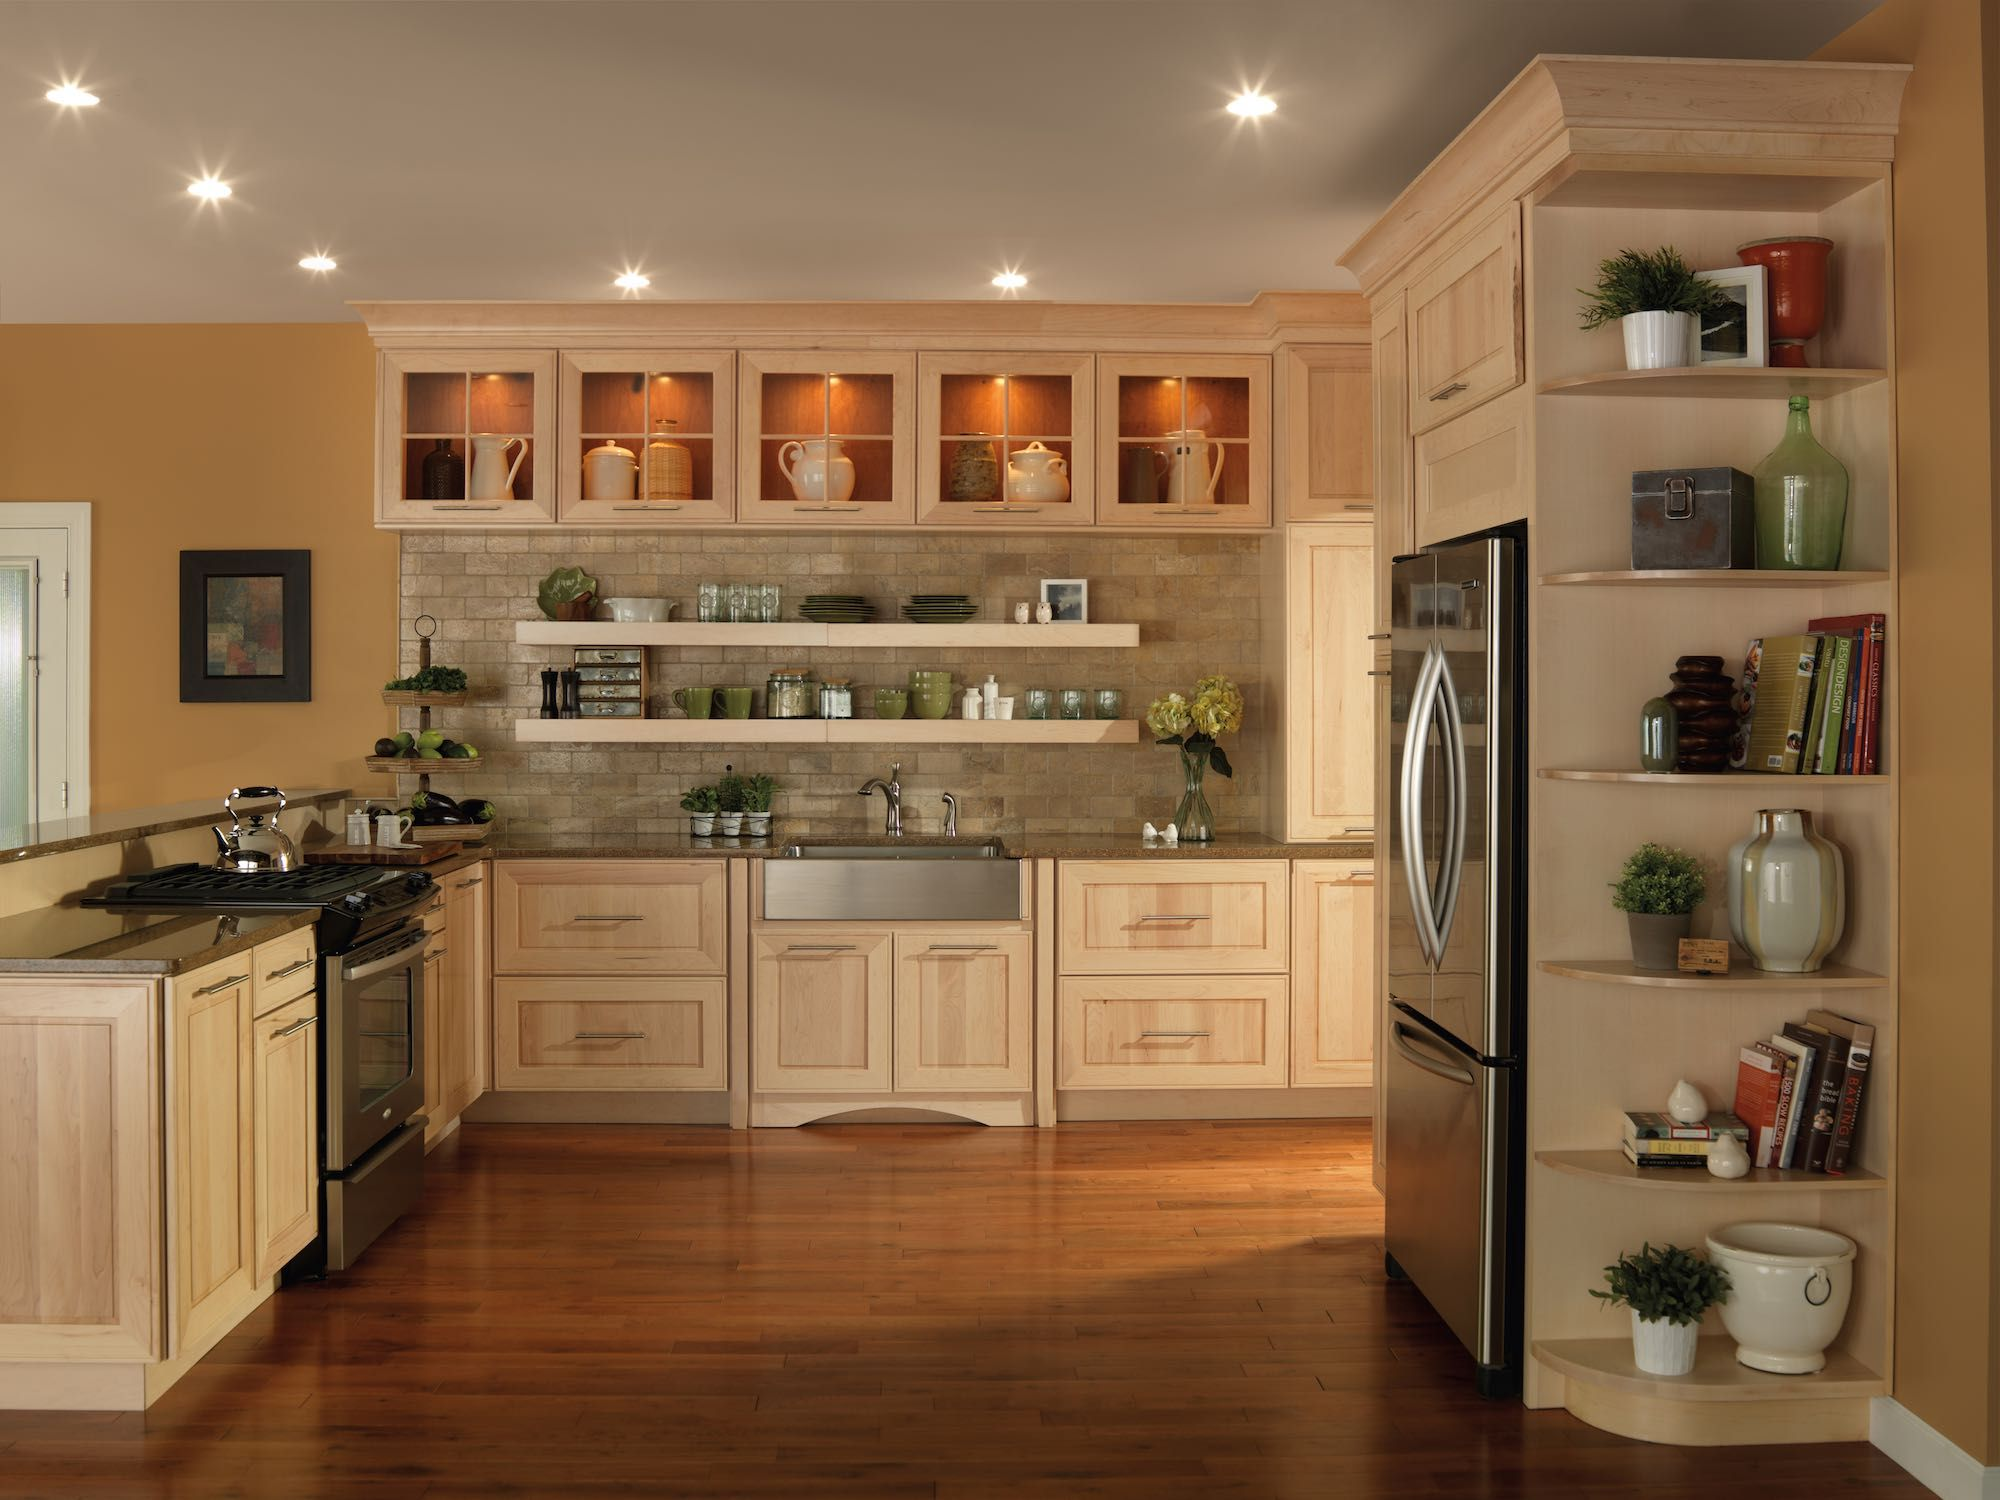 Image Of Maple Kitchen Cabinets Maple Is The Very Best Option For Open Spaces As It Supplie Maple Kitchen Cabinets Merillat Kitchen Cabinets Kitchen Cabinets